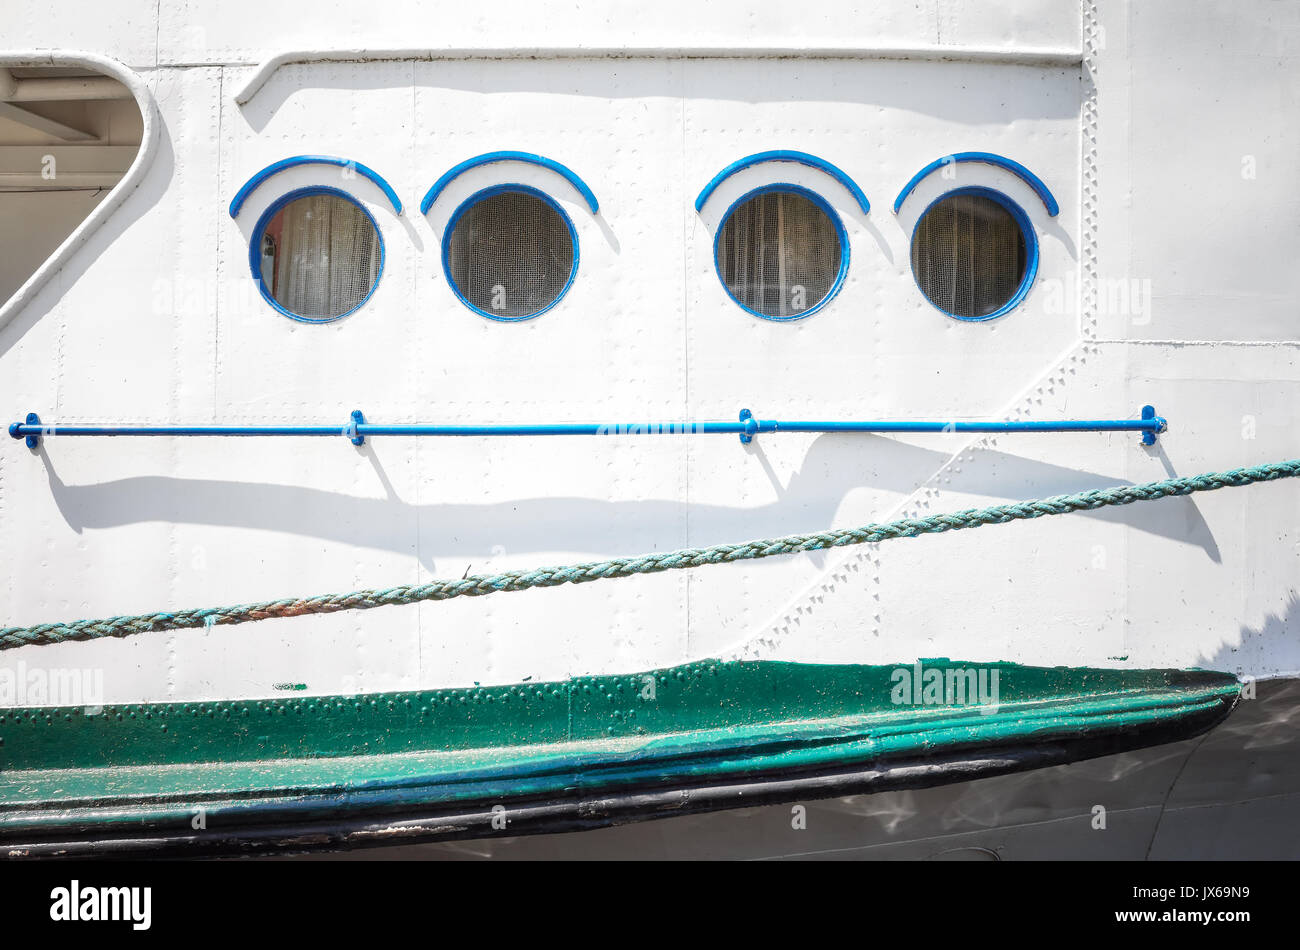 Close up picture of an old ship side and portholes. - Stock Image